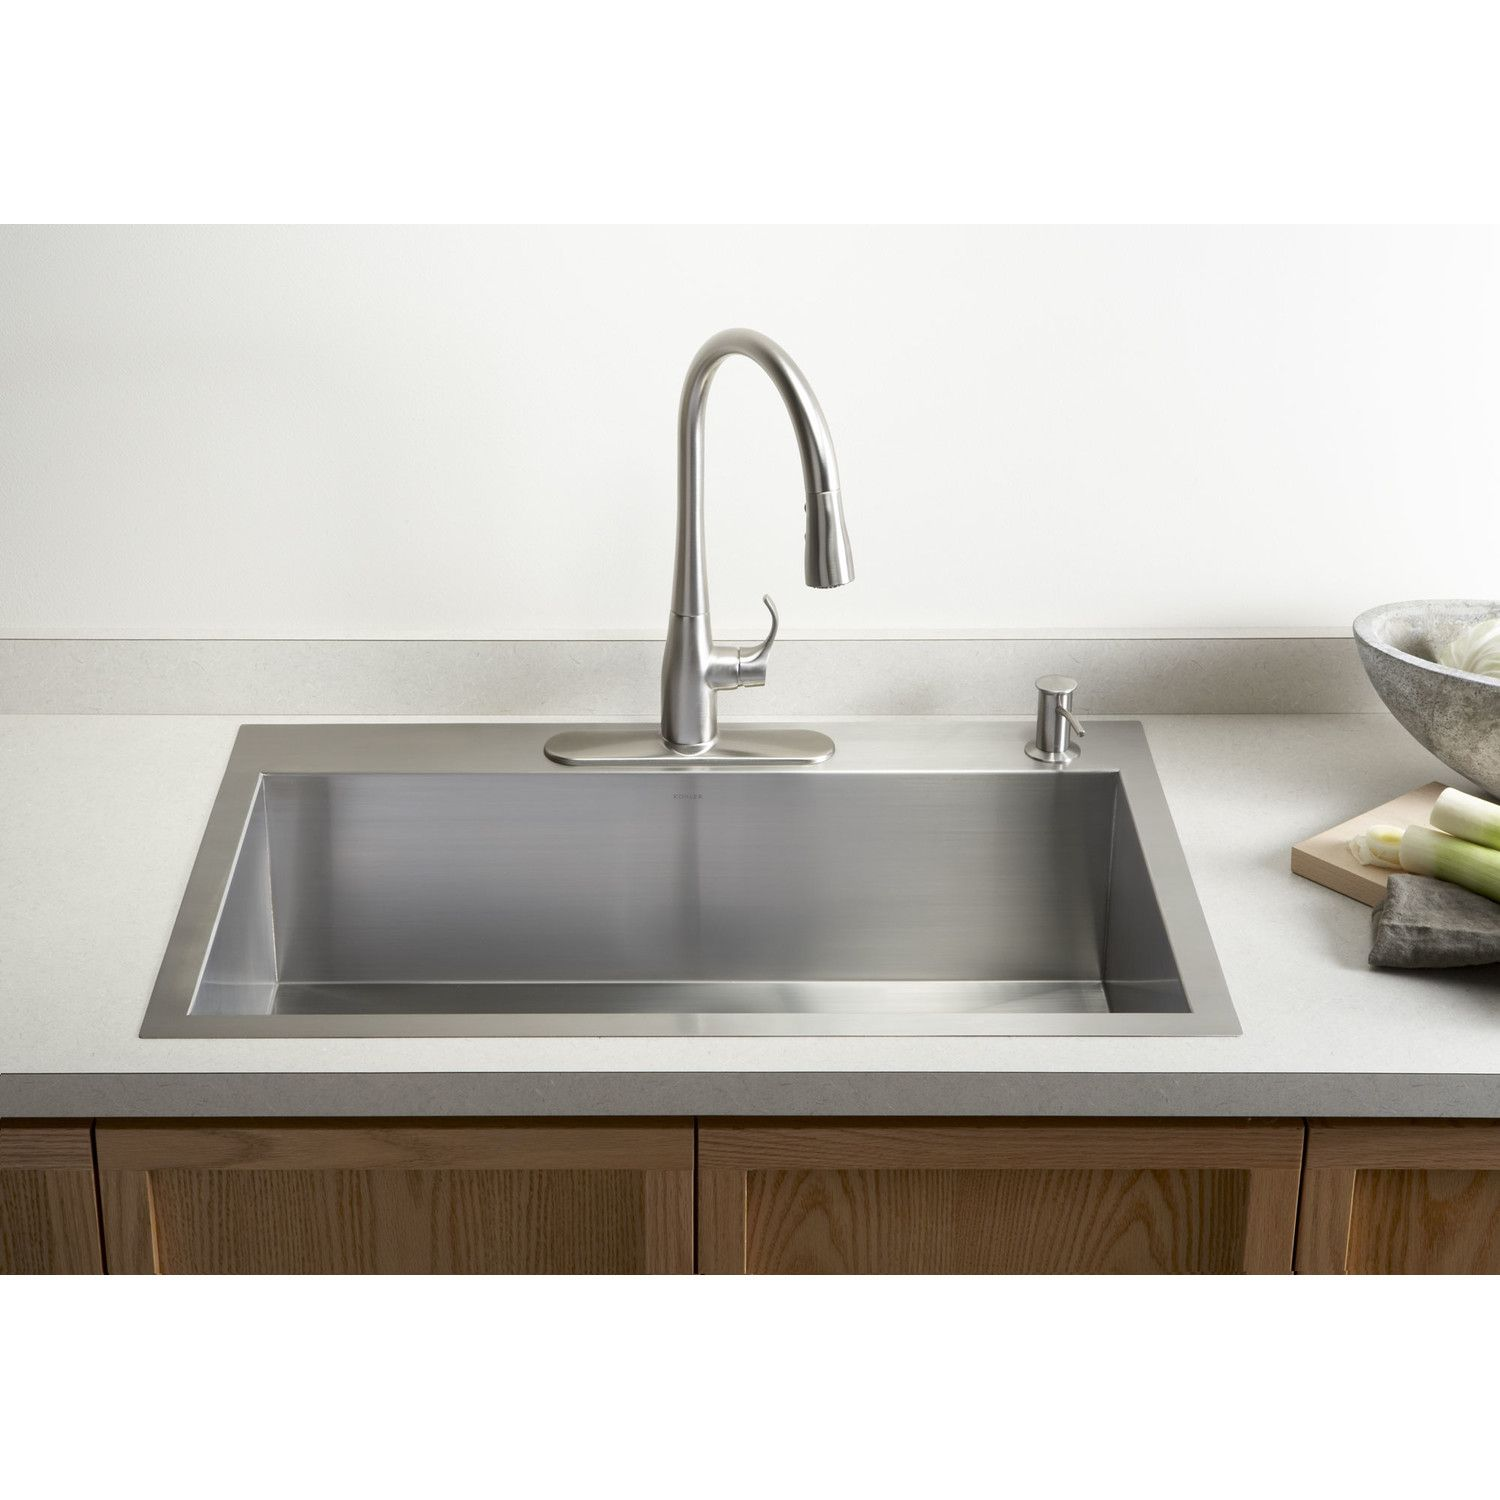 Vault top mount under mount large single bowl kitchen sink with single faucet hole